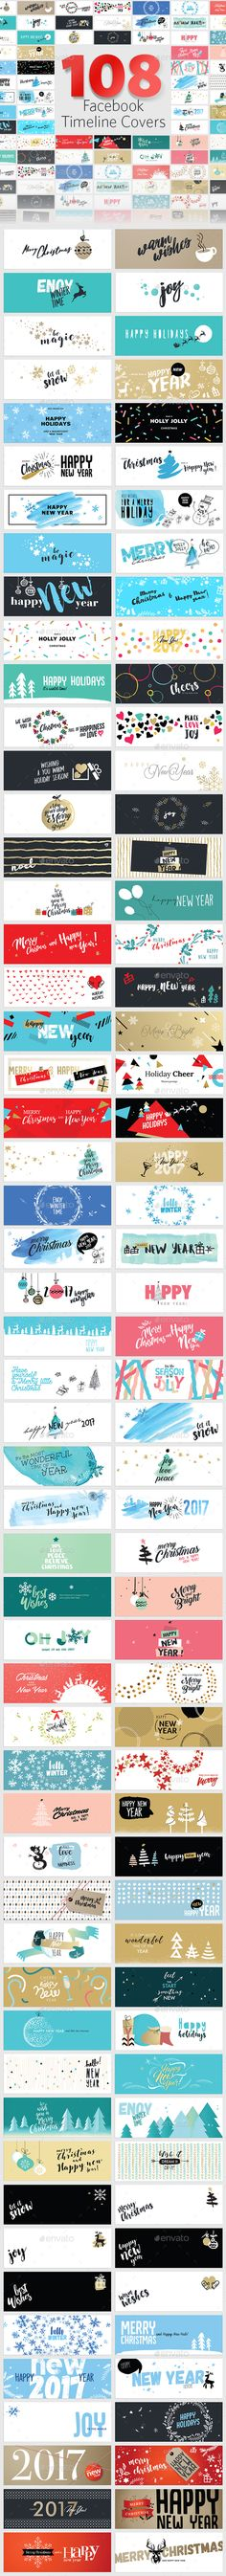 Christmas and New Year's Facebook Covers — Photoshop PSD #marketing #vector • Download ➝ https://graphicriver.net/item/christmas-and-new-years-facebook-covers/19167459?ref=pxcr